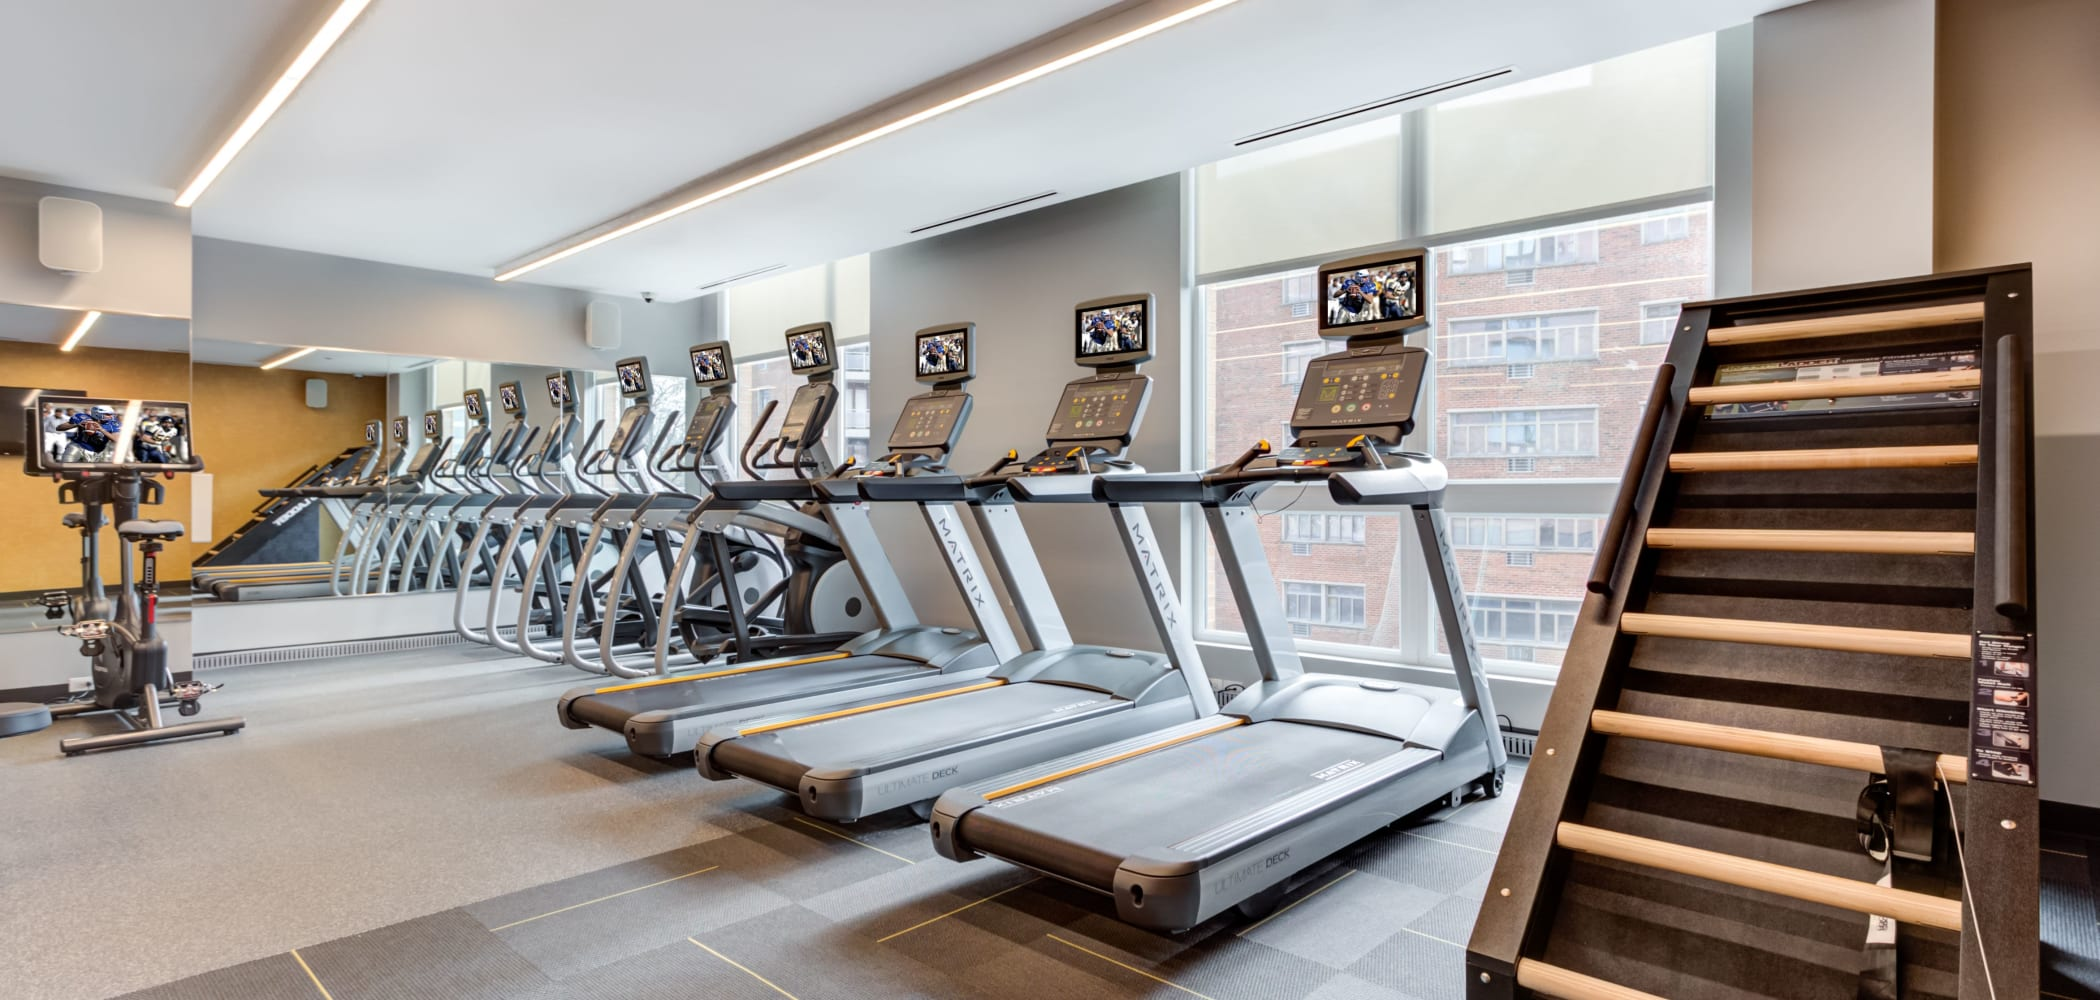 Fitness center for residents at The Link Evanston in Evanston, Illinois